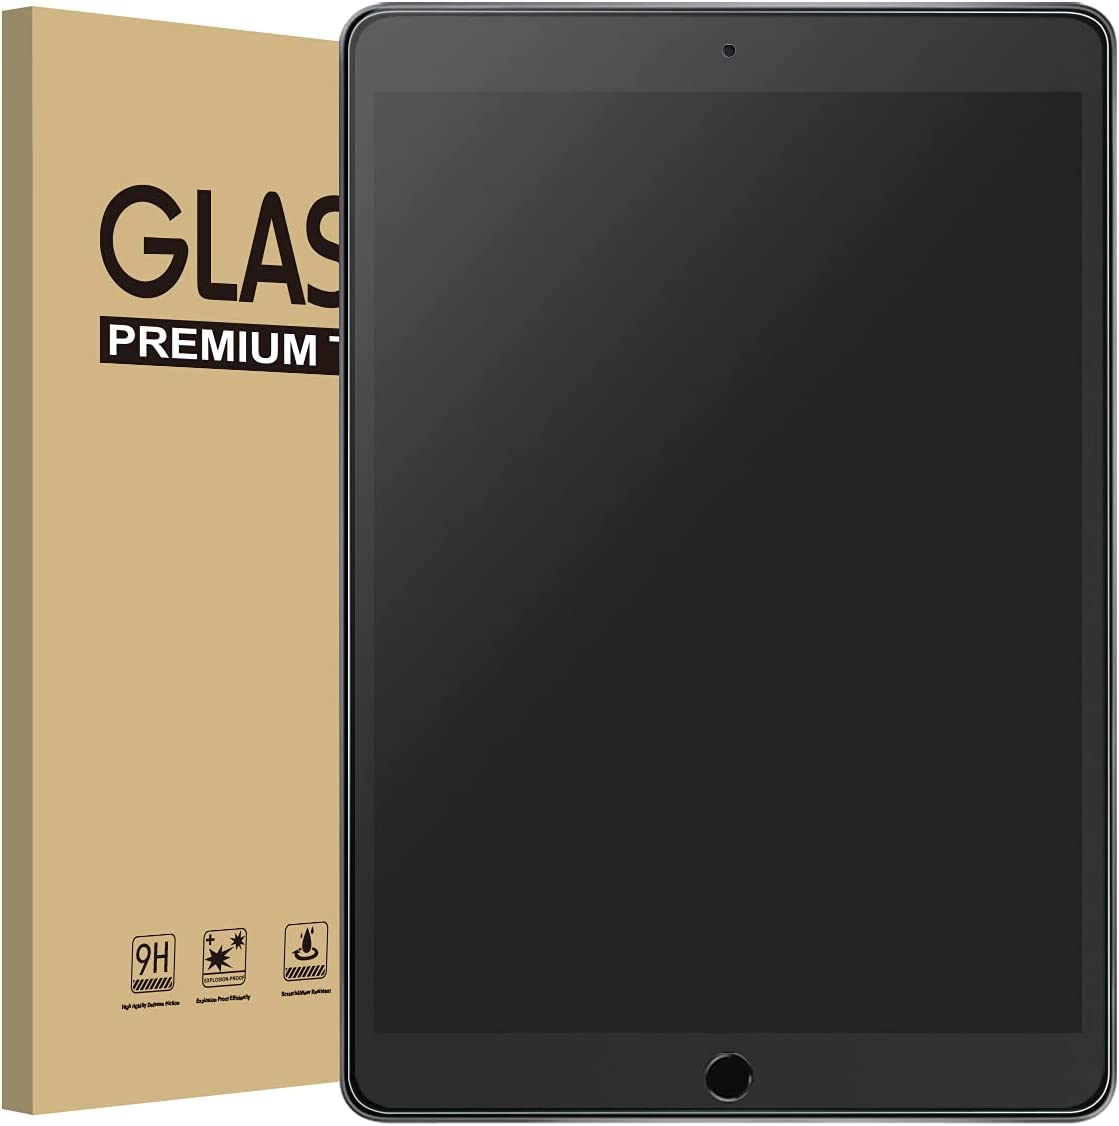 Mothca Matte Screen service Protector for iPad 2018 National uniform free shipping Model Inch 9.7 2017